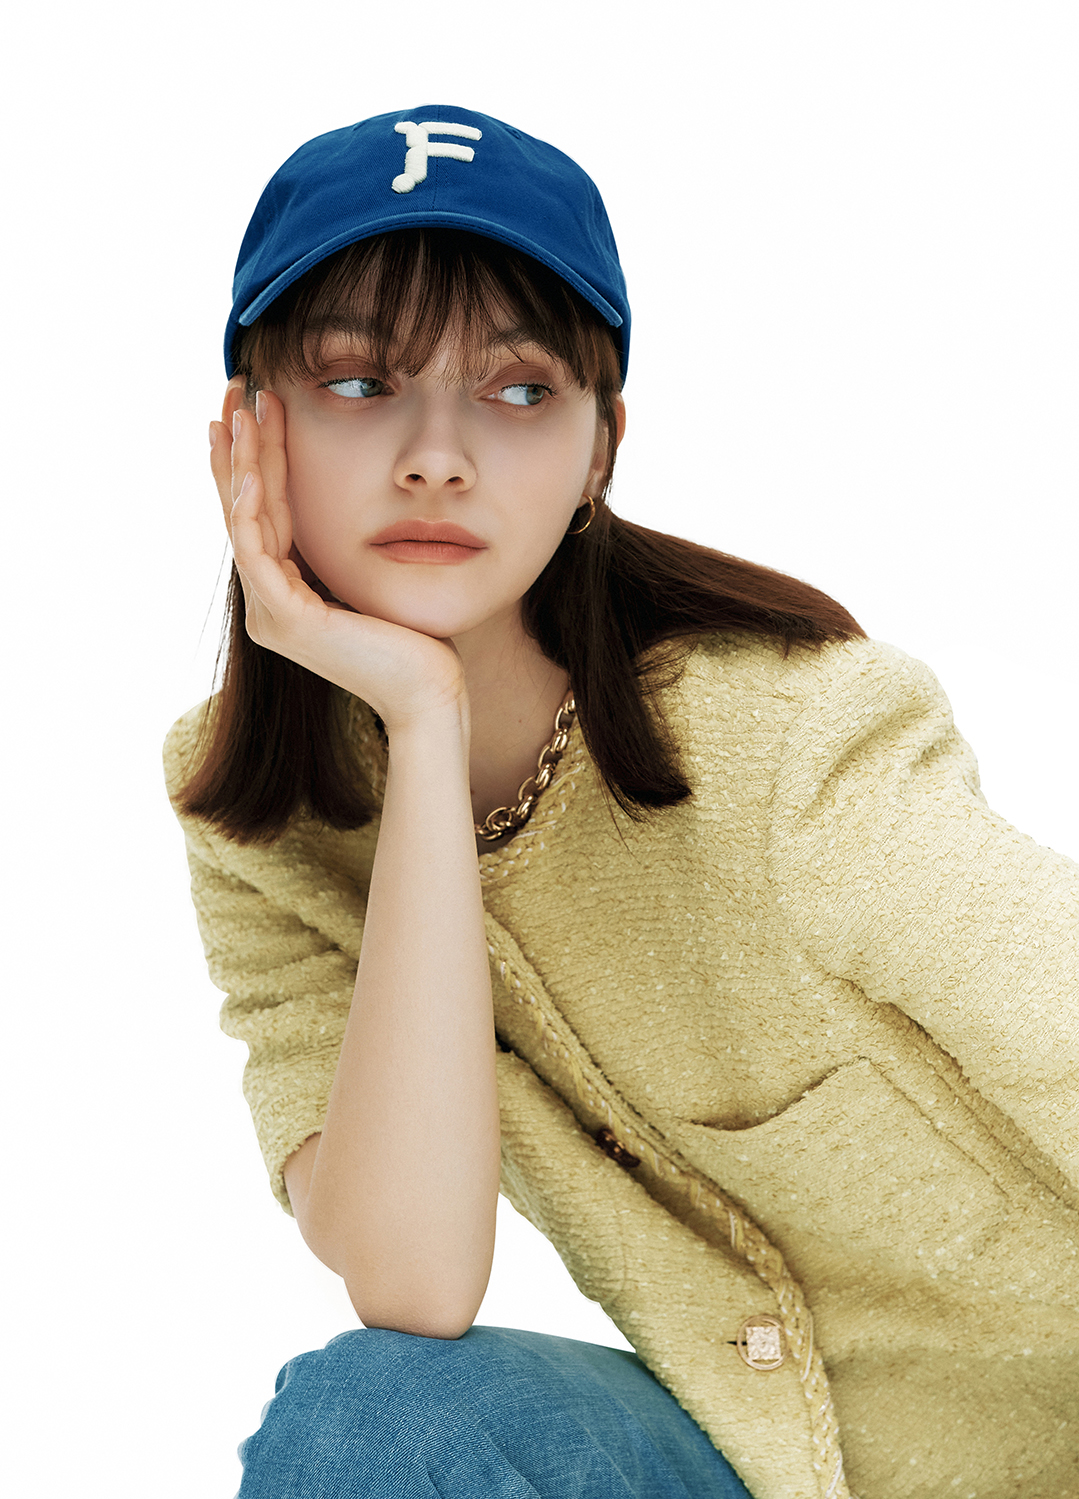 [FAD]For a day baseball cap